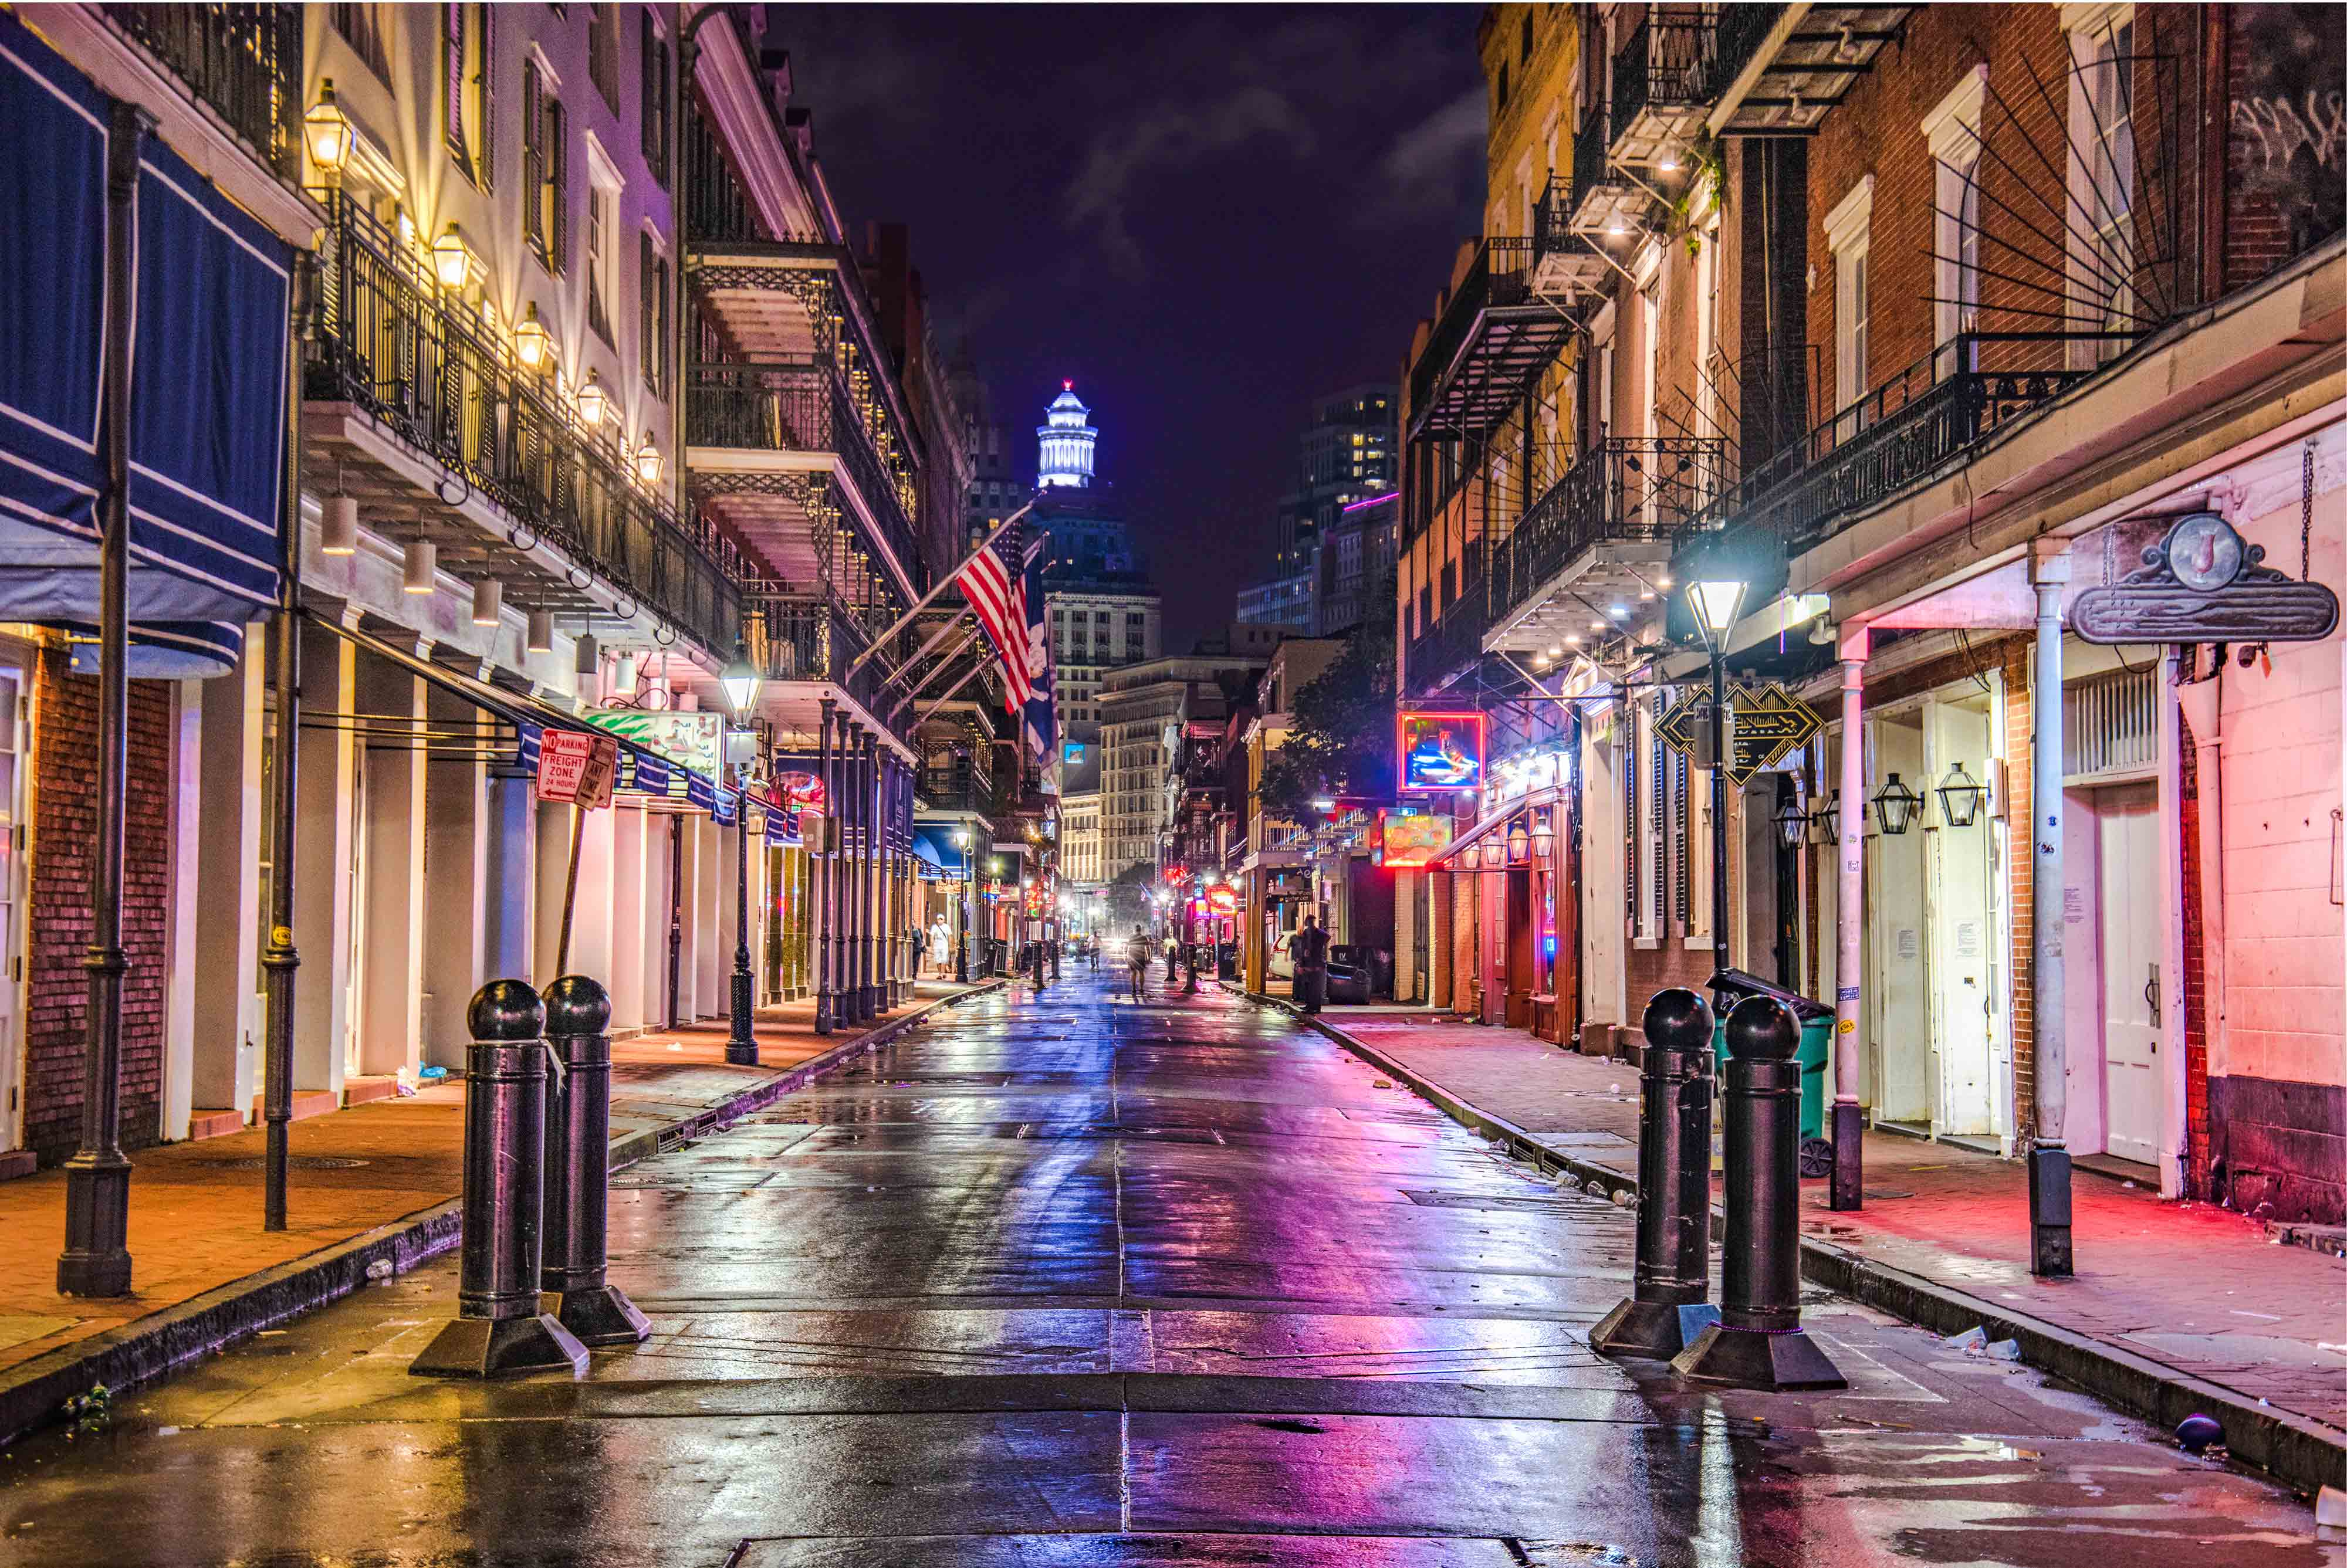 new orleans june 23 - 26